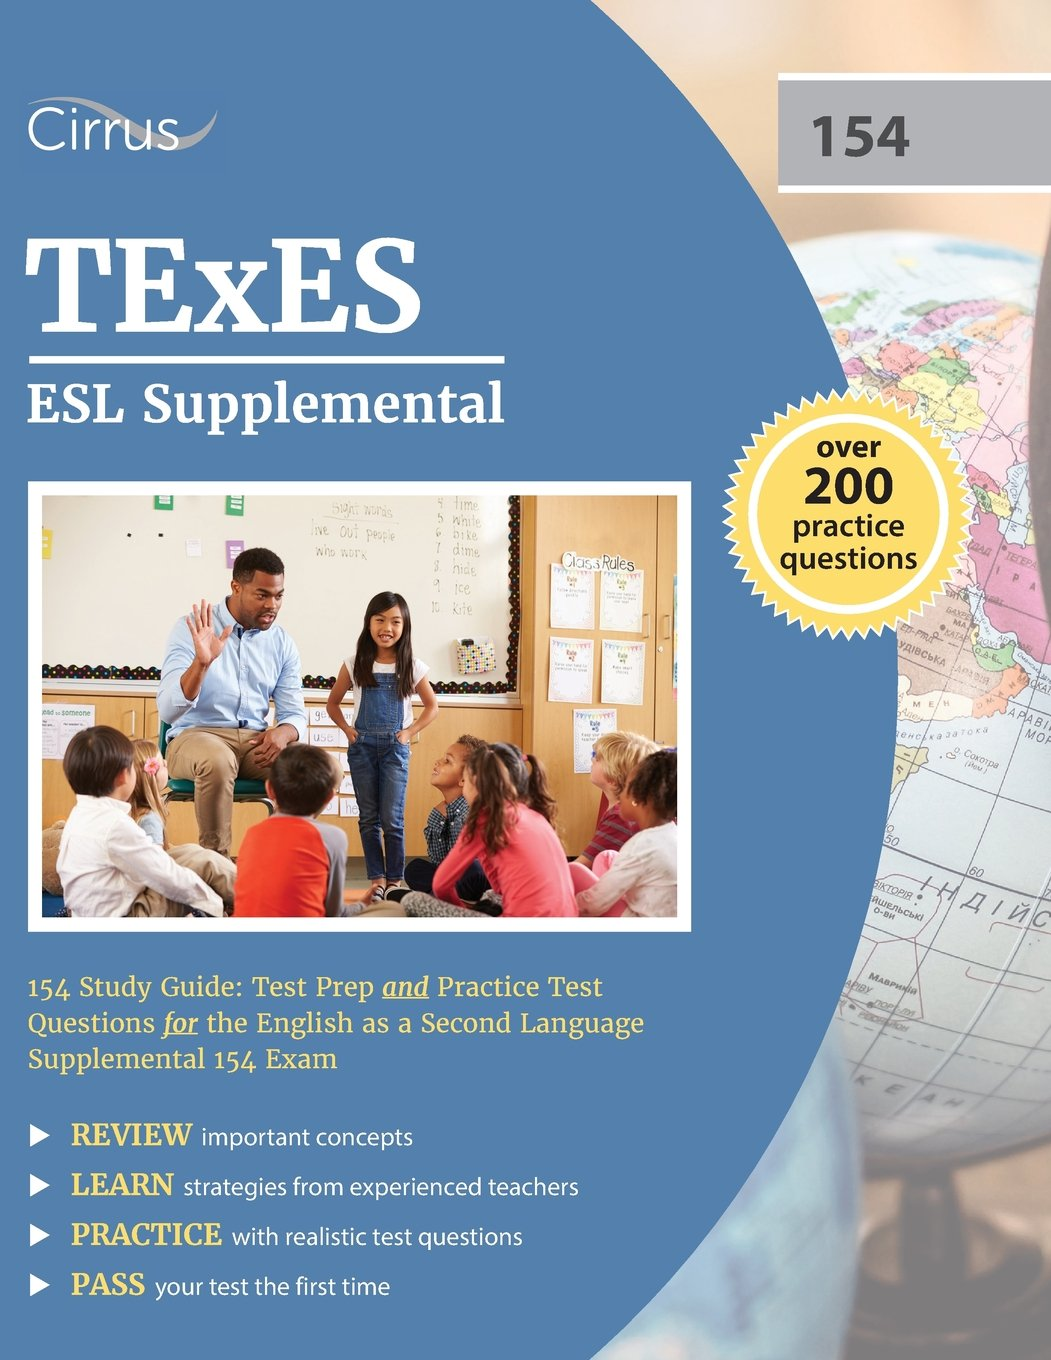 Texes esl supplemental 154 study guide test prep and practice texes esl supplemental 154 study guide test prep and practice test questions for the english as a second language supplemental 154 exam texes esl exam sciox Choice Image